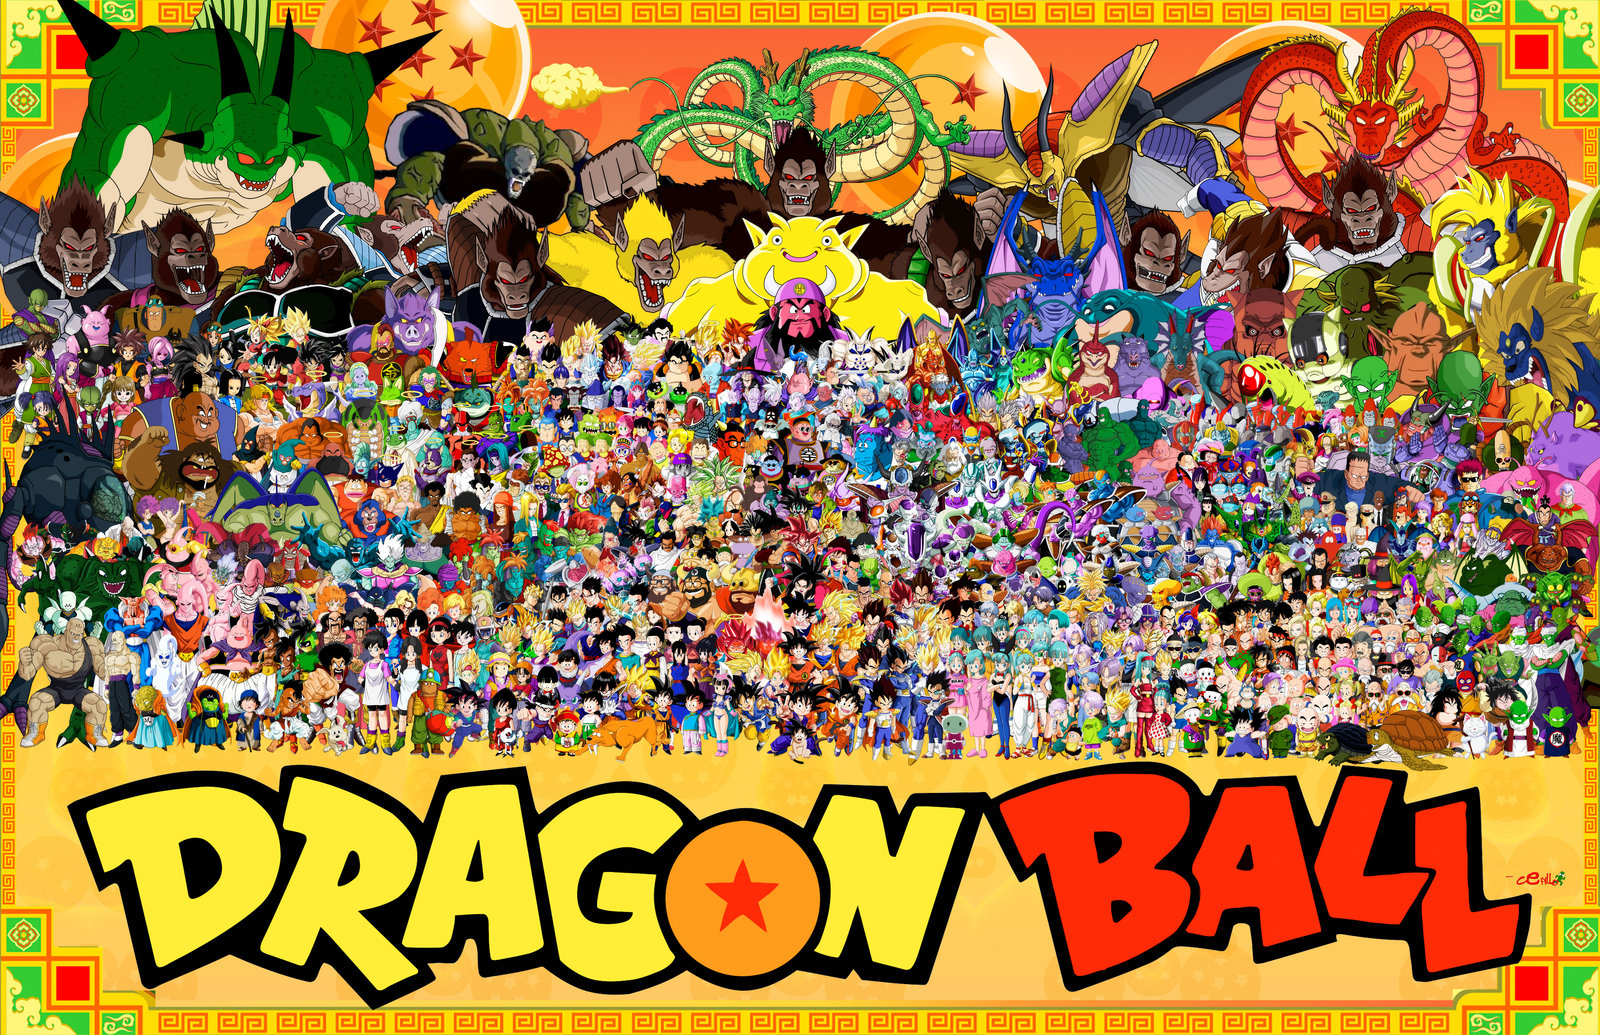 DRAGON BALL universe wallpaper by Cepillo16 1600x1035